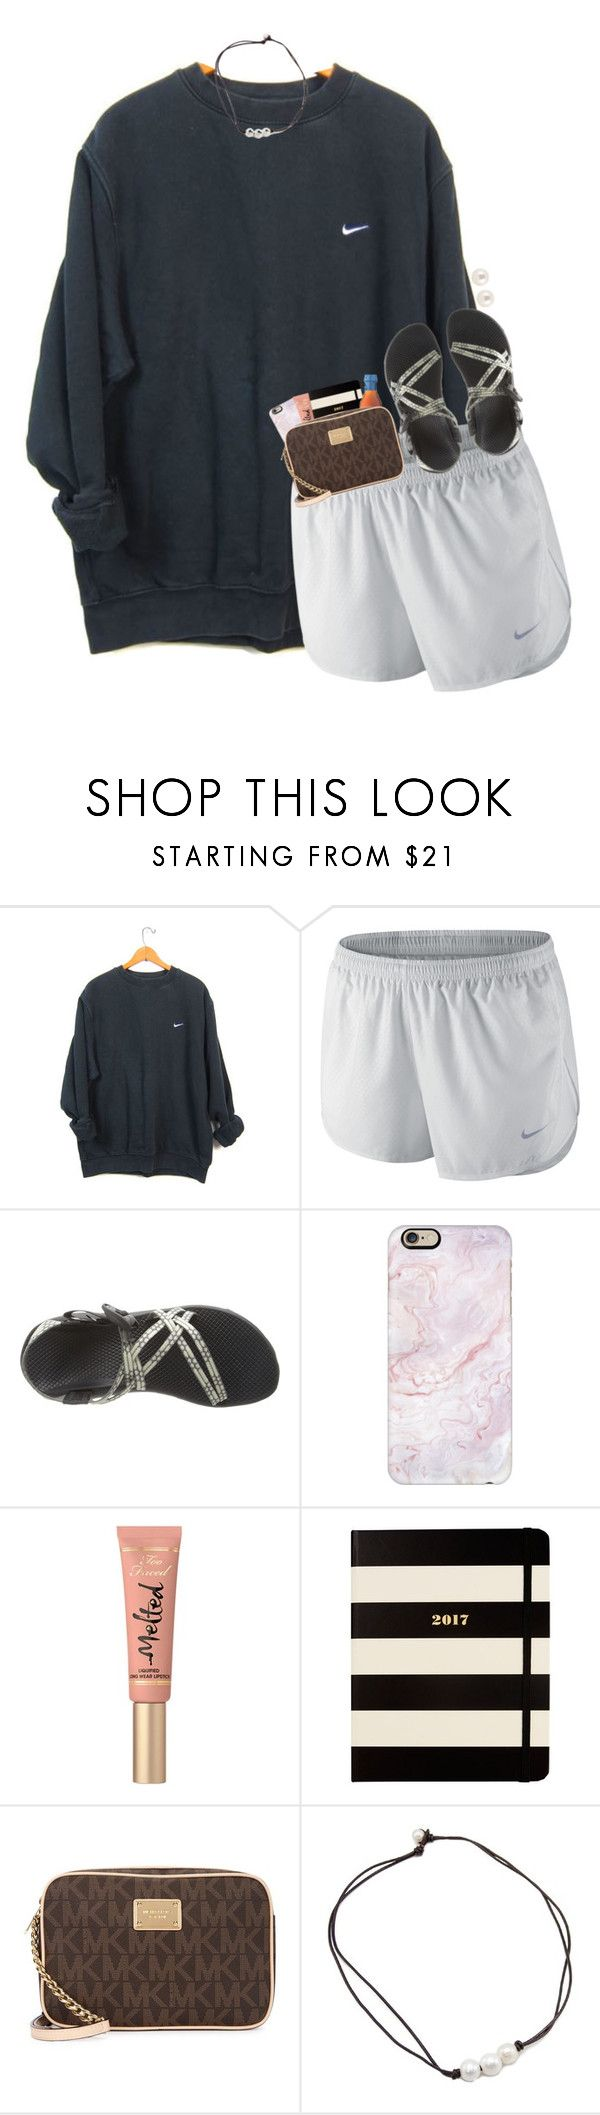 """""""currently watching AGT with my sister"""" by hmcdaniel01 ❤ liked on Polyvore featuring NIKE, Chaco, Casetify, Too Faced Cosmetics, Kate Spade, Michael Kors and Henri Bendel"""